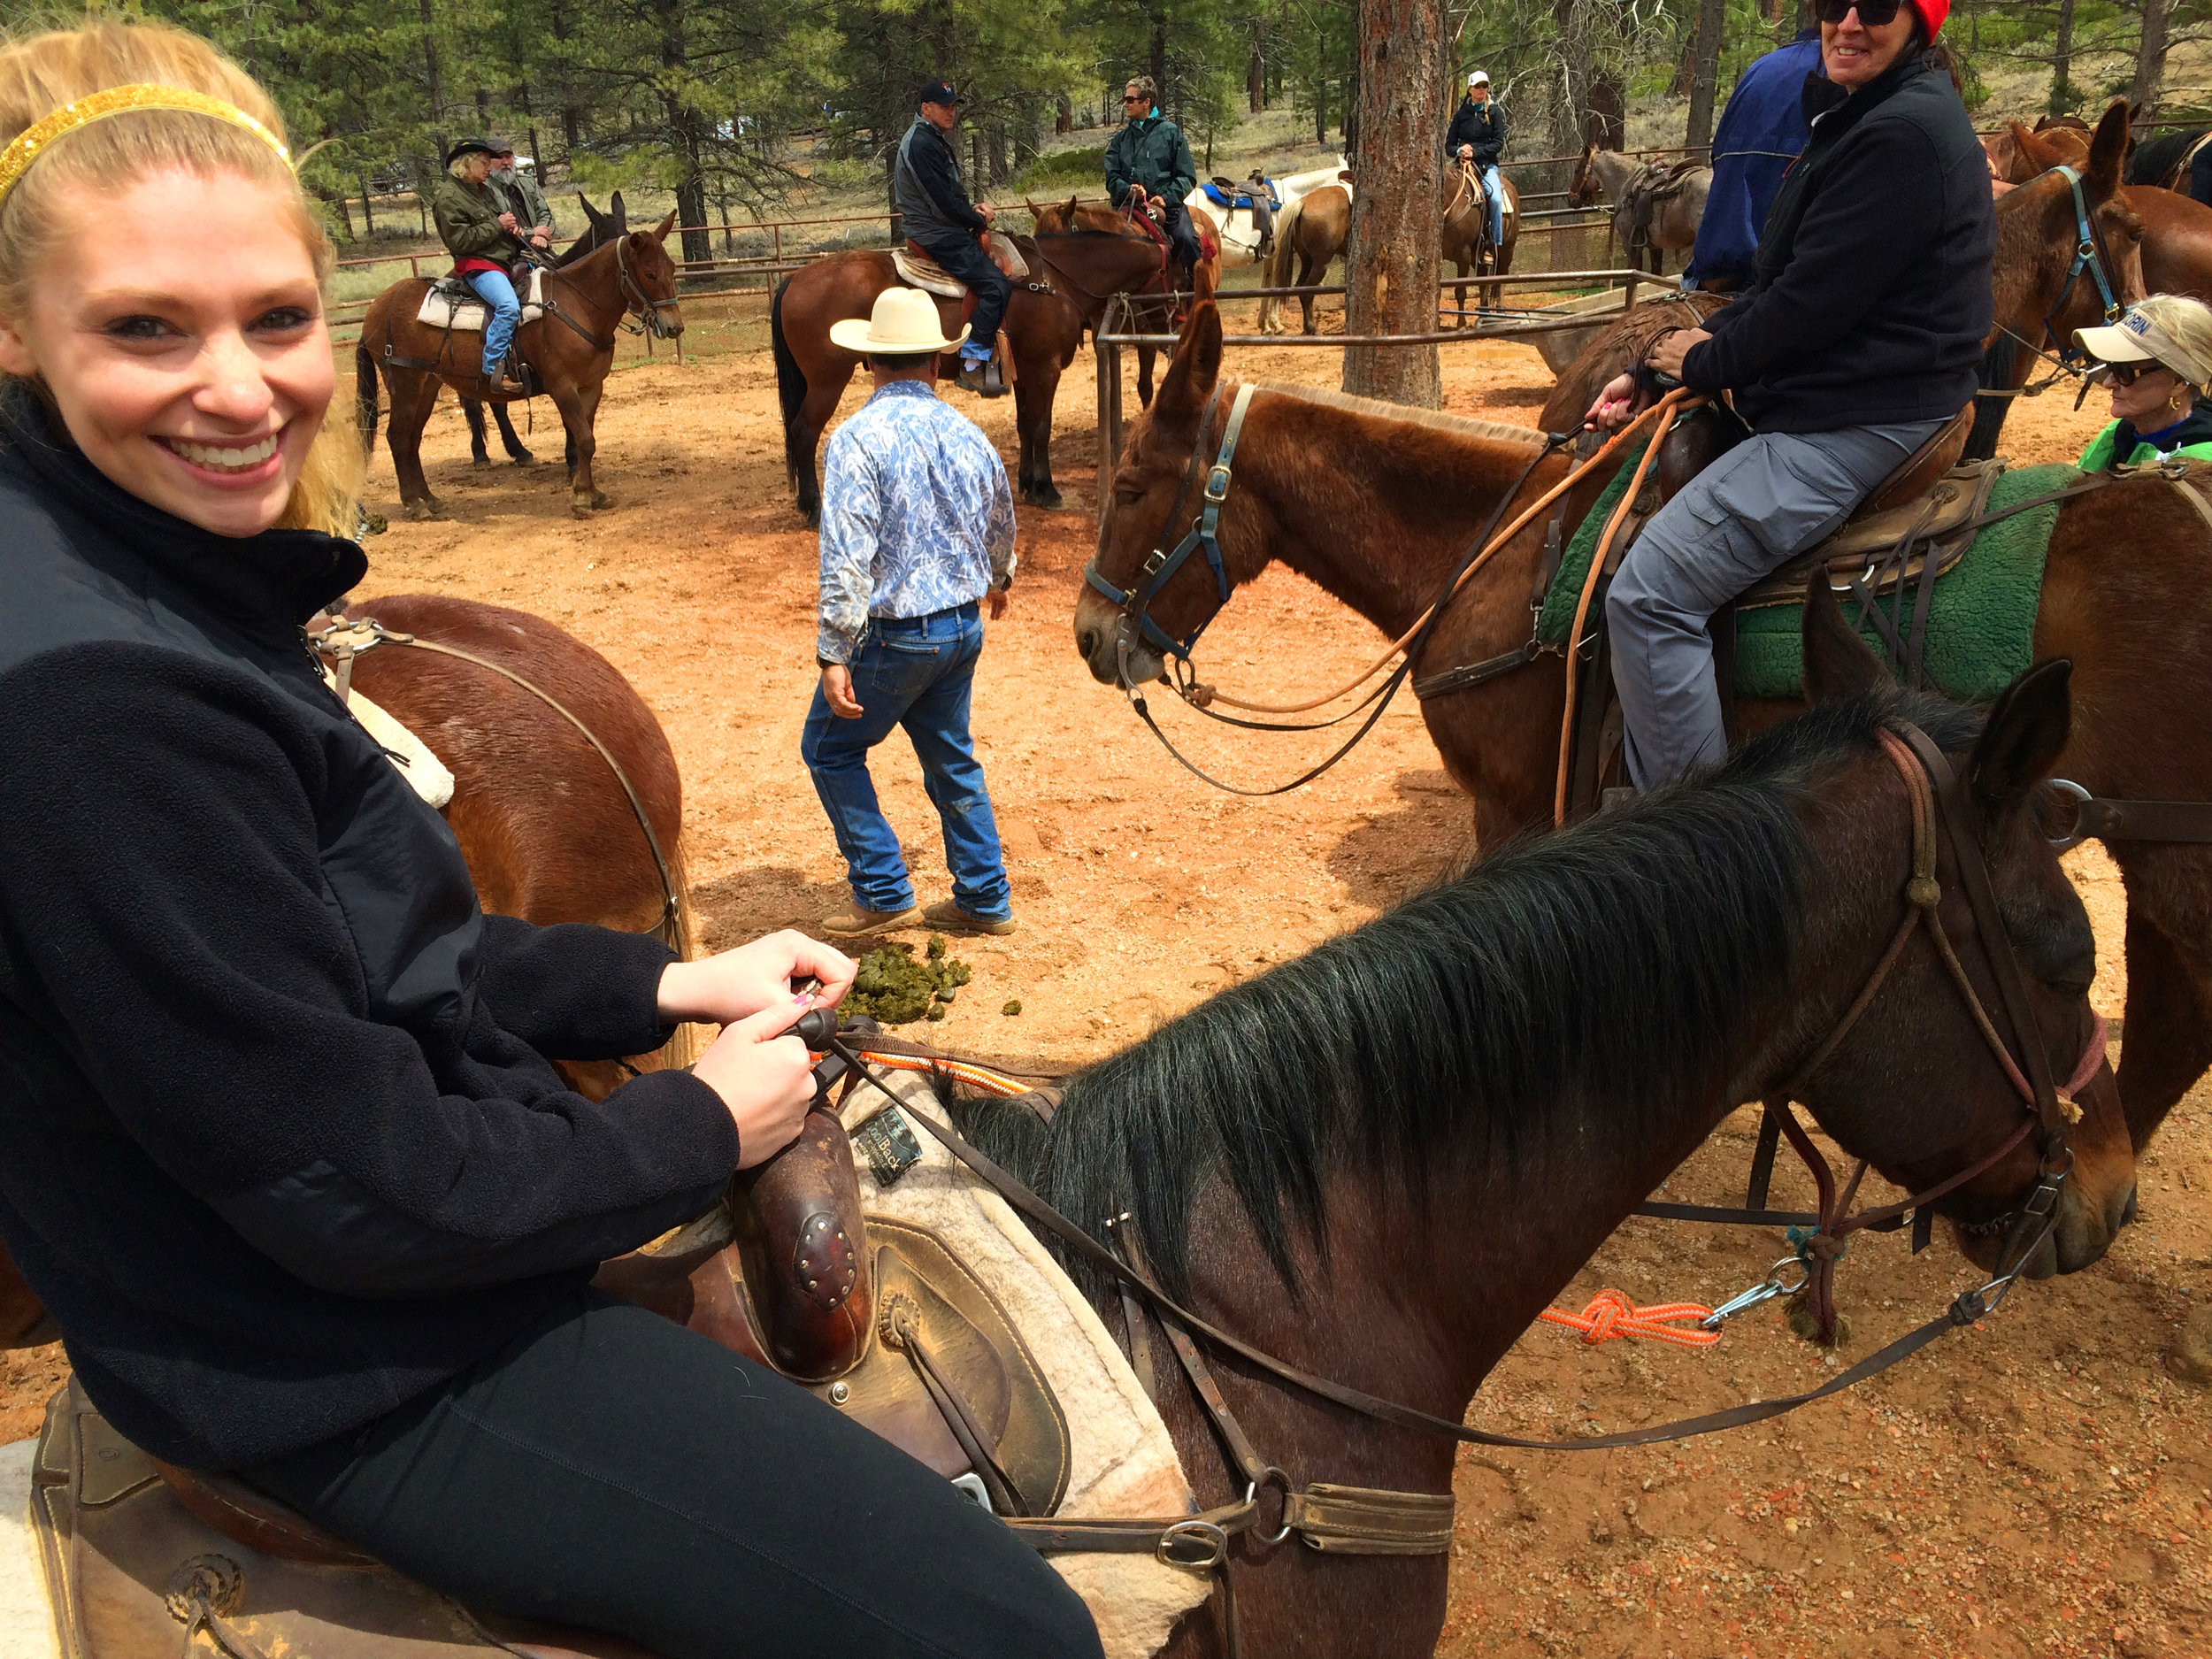 Being paired with a horse at Bryce Canyon, Canyon Rides